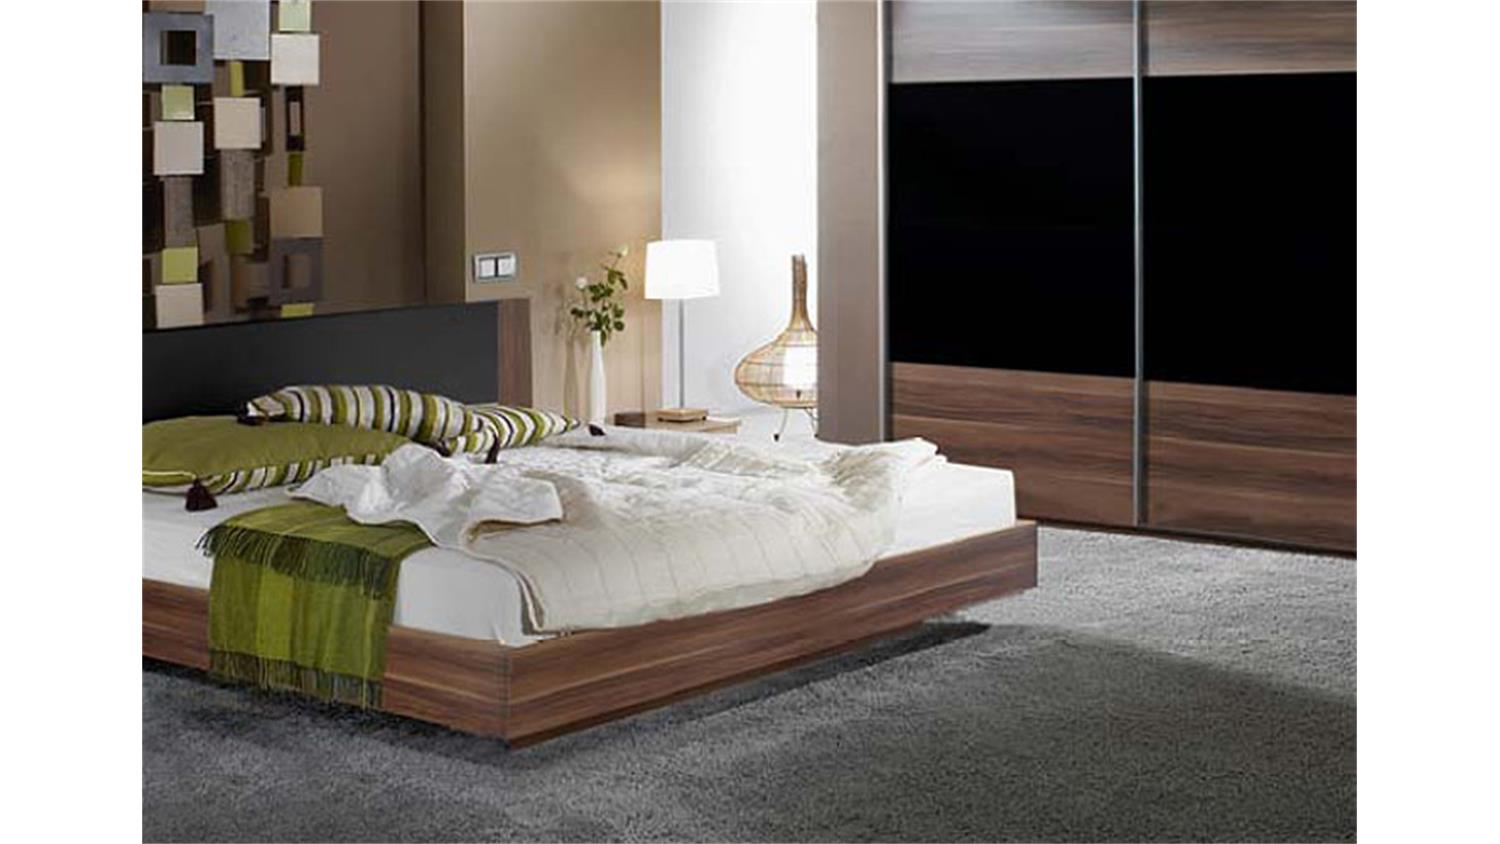 zimmerdekoration selber machen. Black Bedroom Furniture Sets. Home Design Ideas